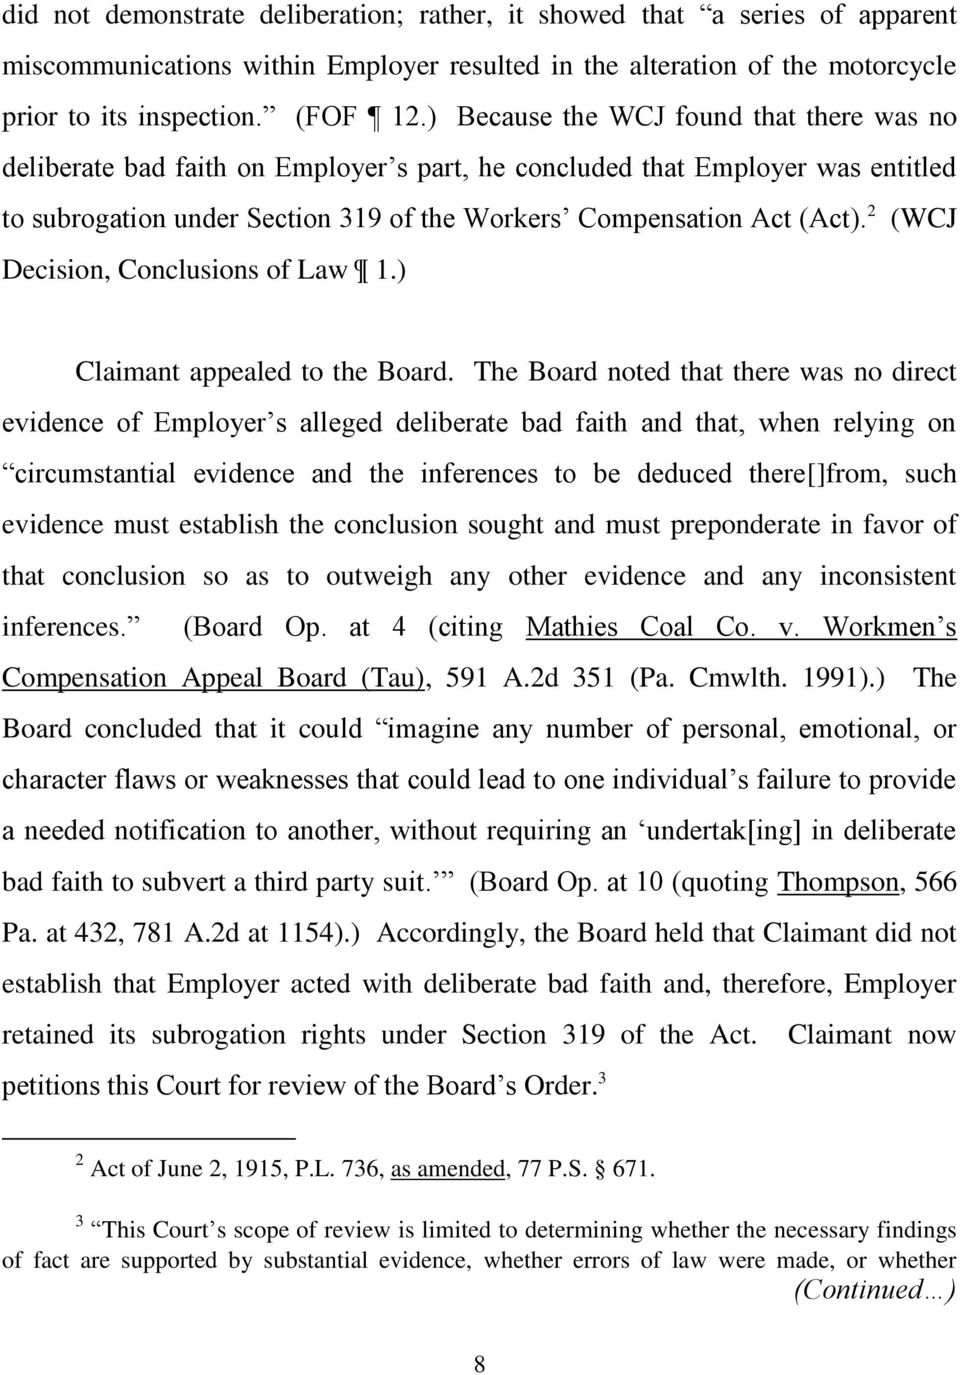 2 (WCJ Decision, Conclusions of Law 1.) Claimant appealed to the Board.